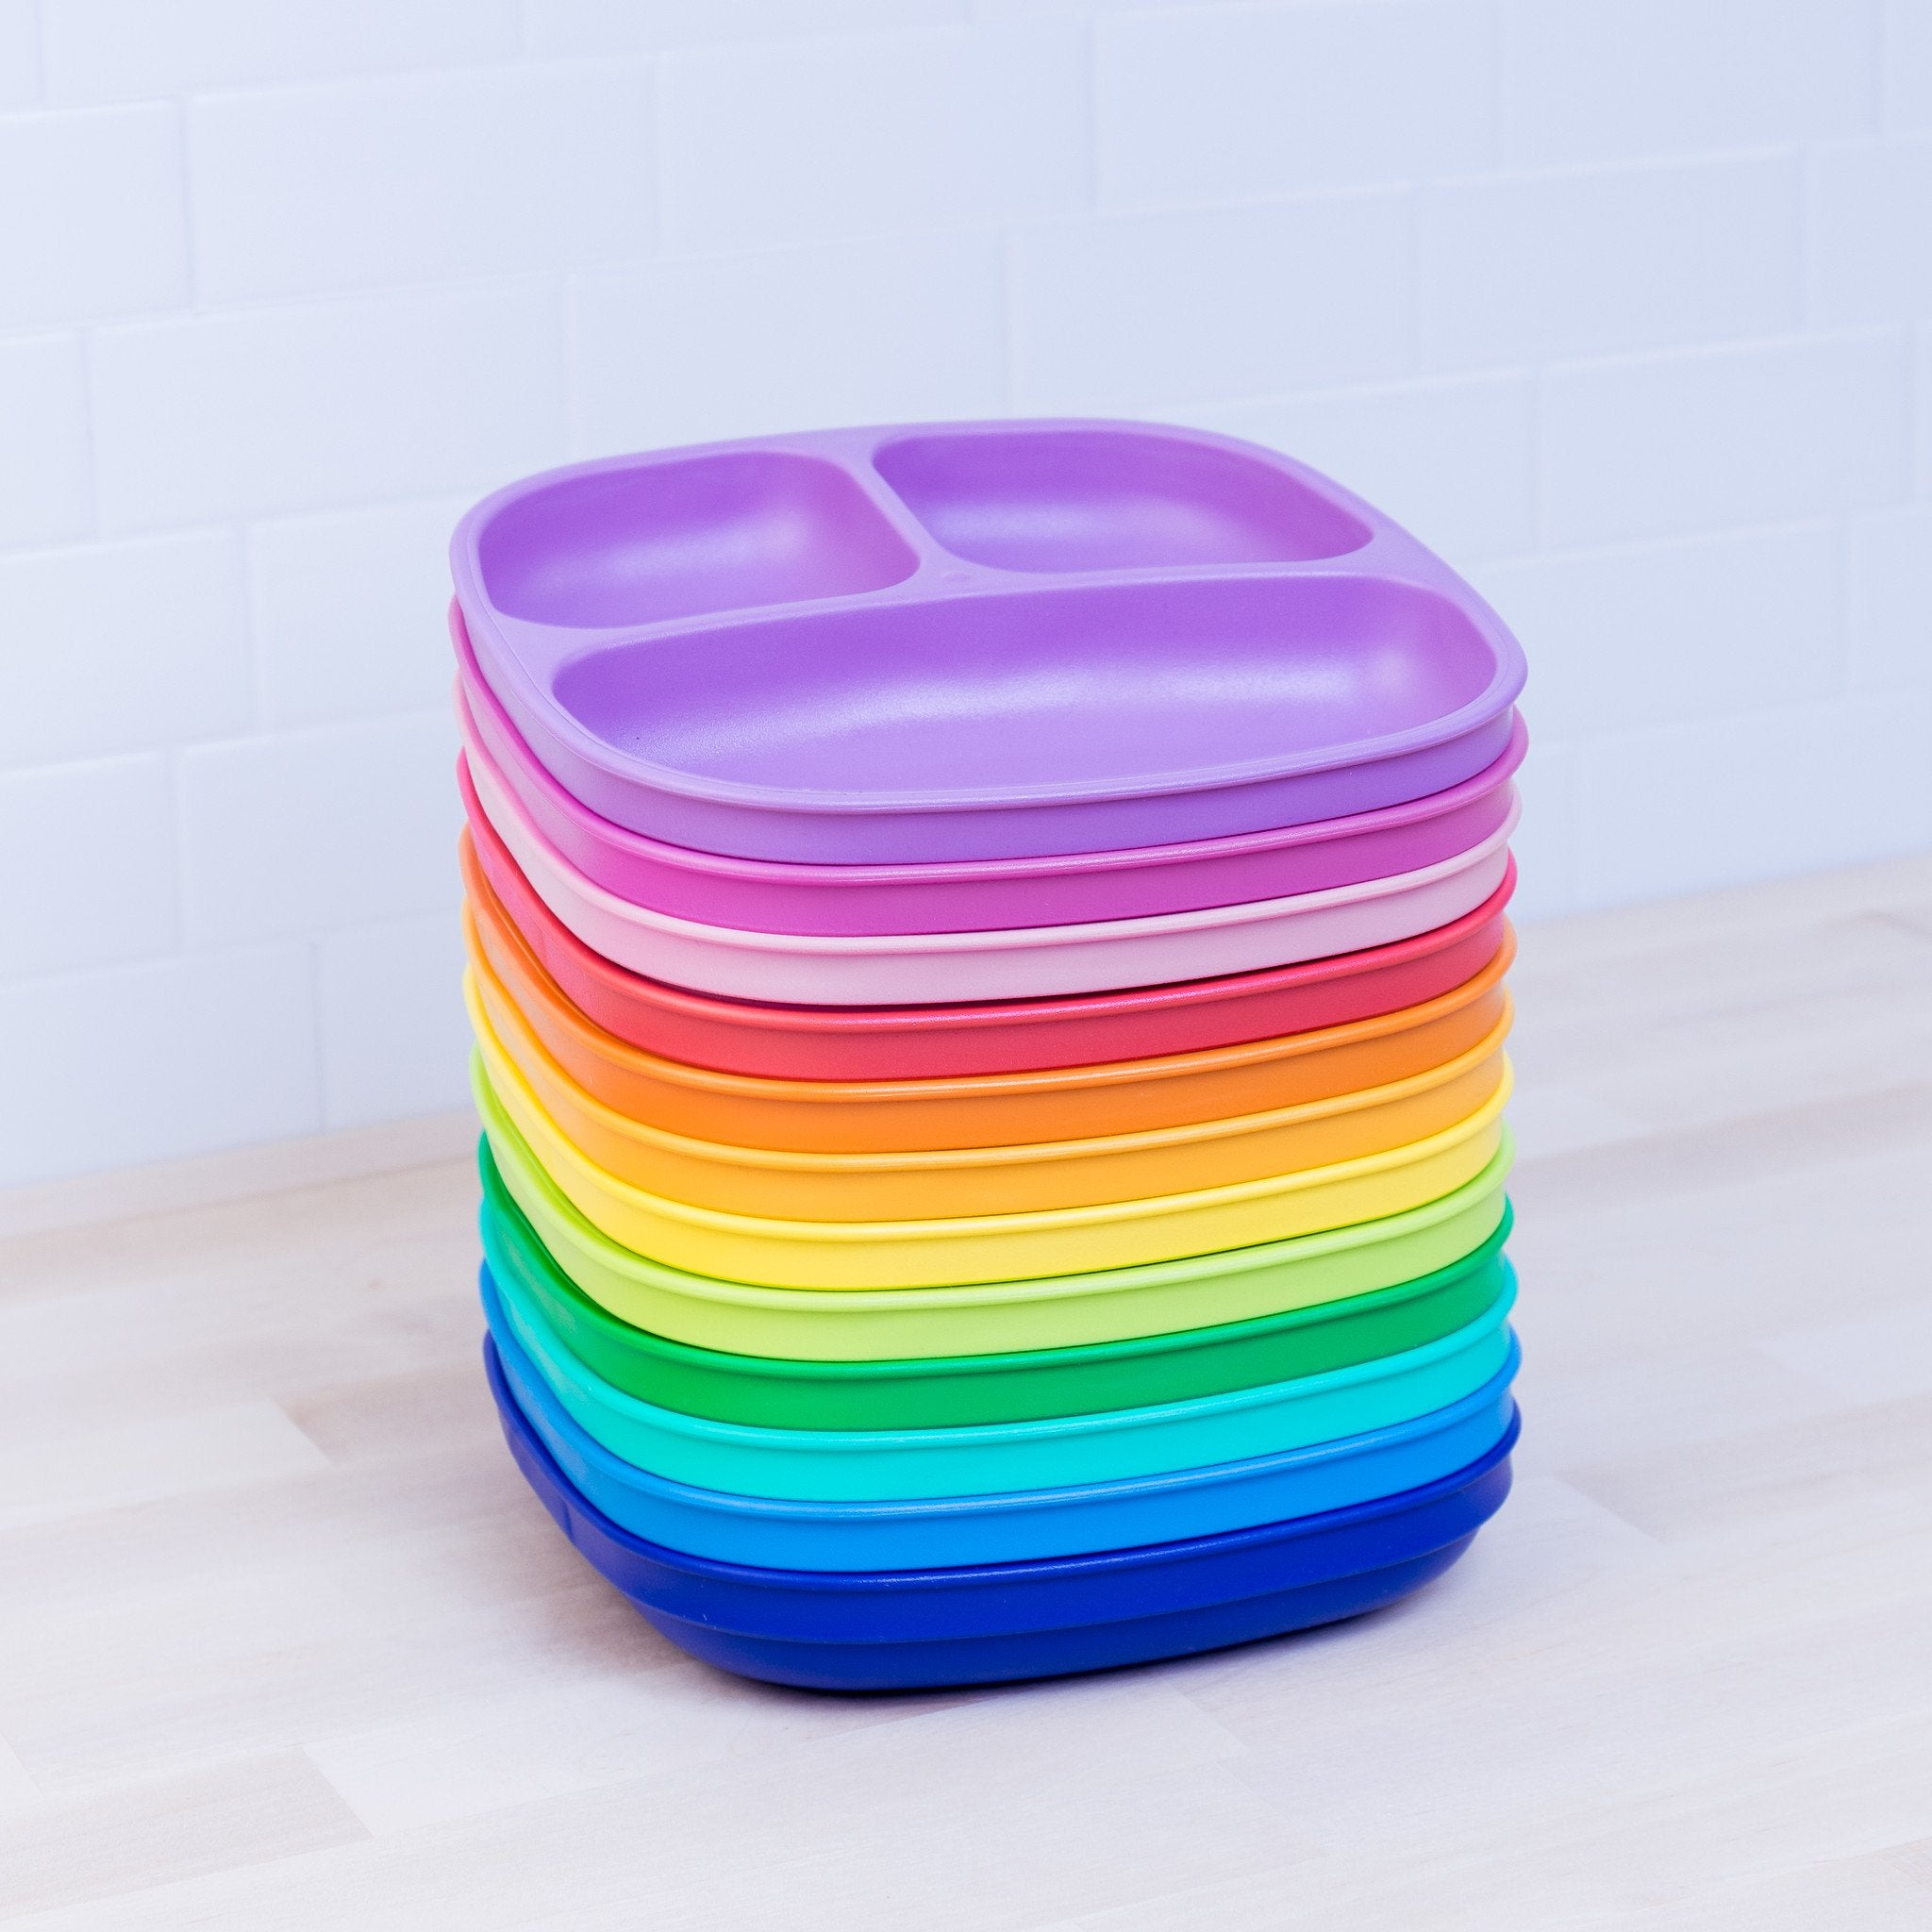 Replay 12 Piece Sets Rainbow Replay Dinnerware at Little Earth Nest Eco Shop